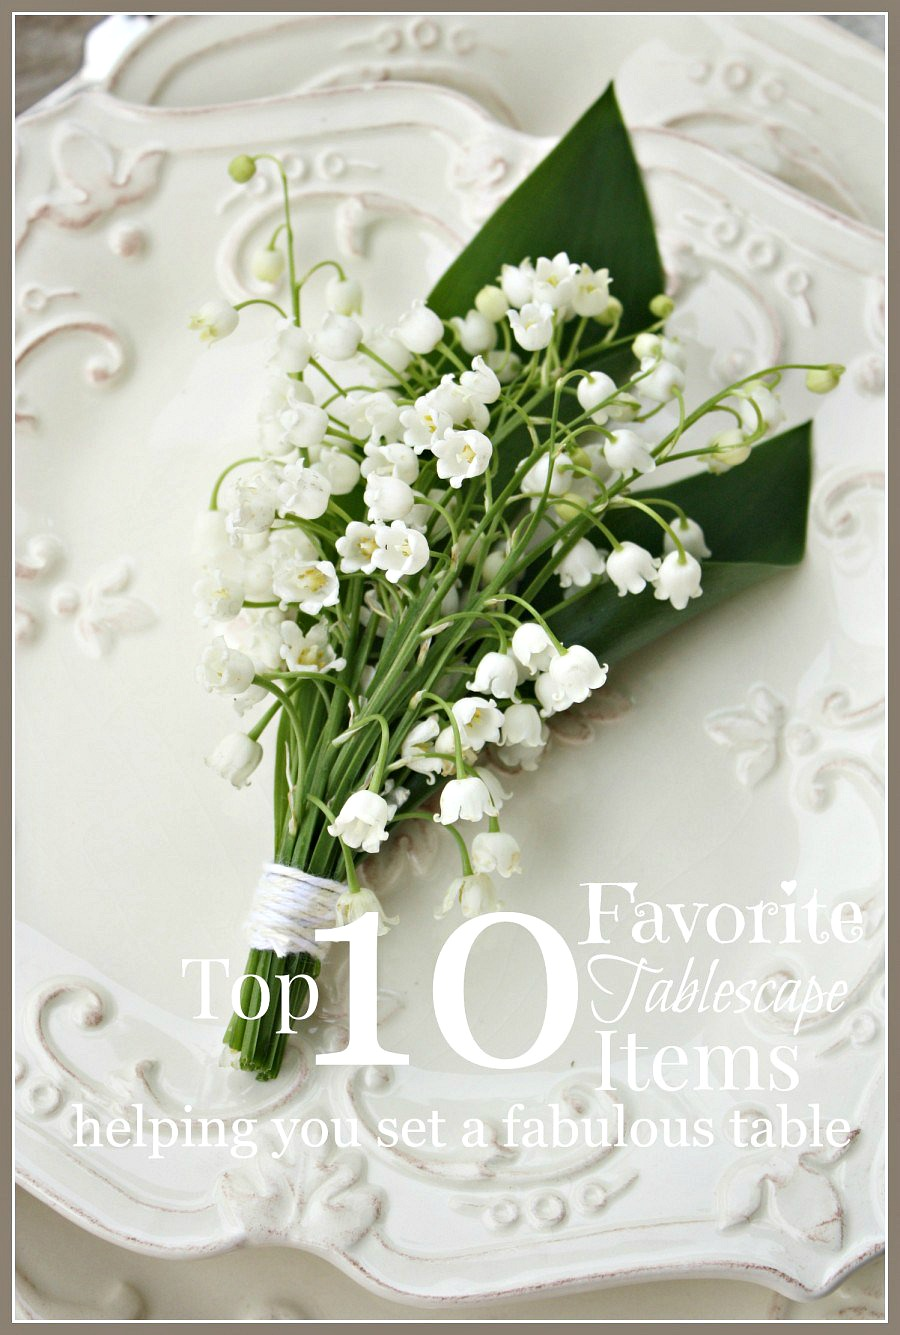 10-MUST-HAVE-ITEMS-FOR-SETTING-A-FABULOUS-TABLESCAPE-stonegableblog.com_